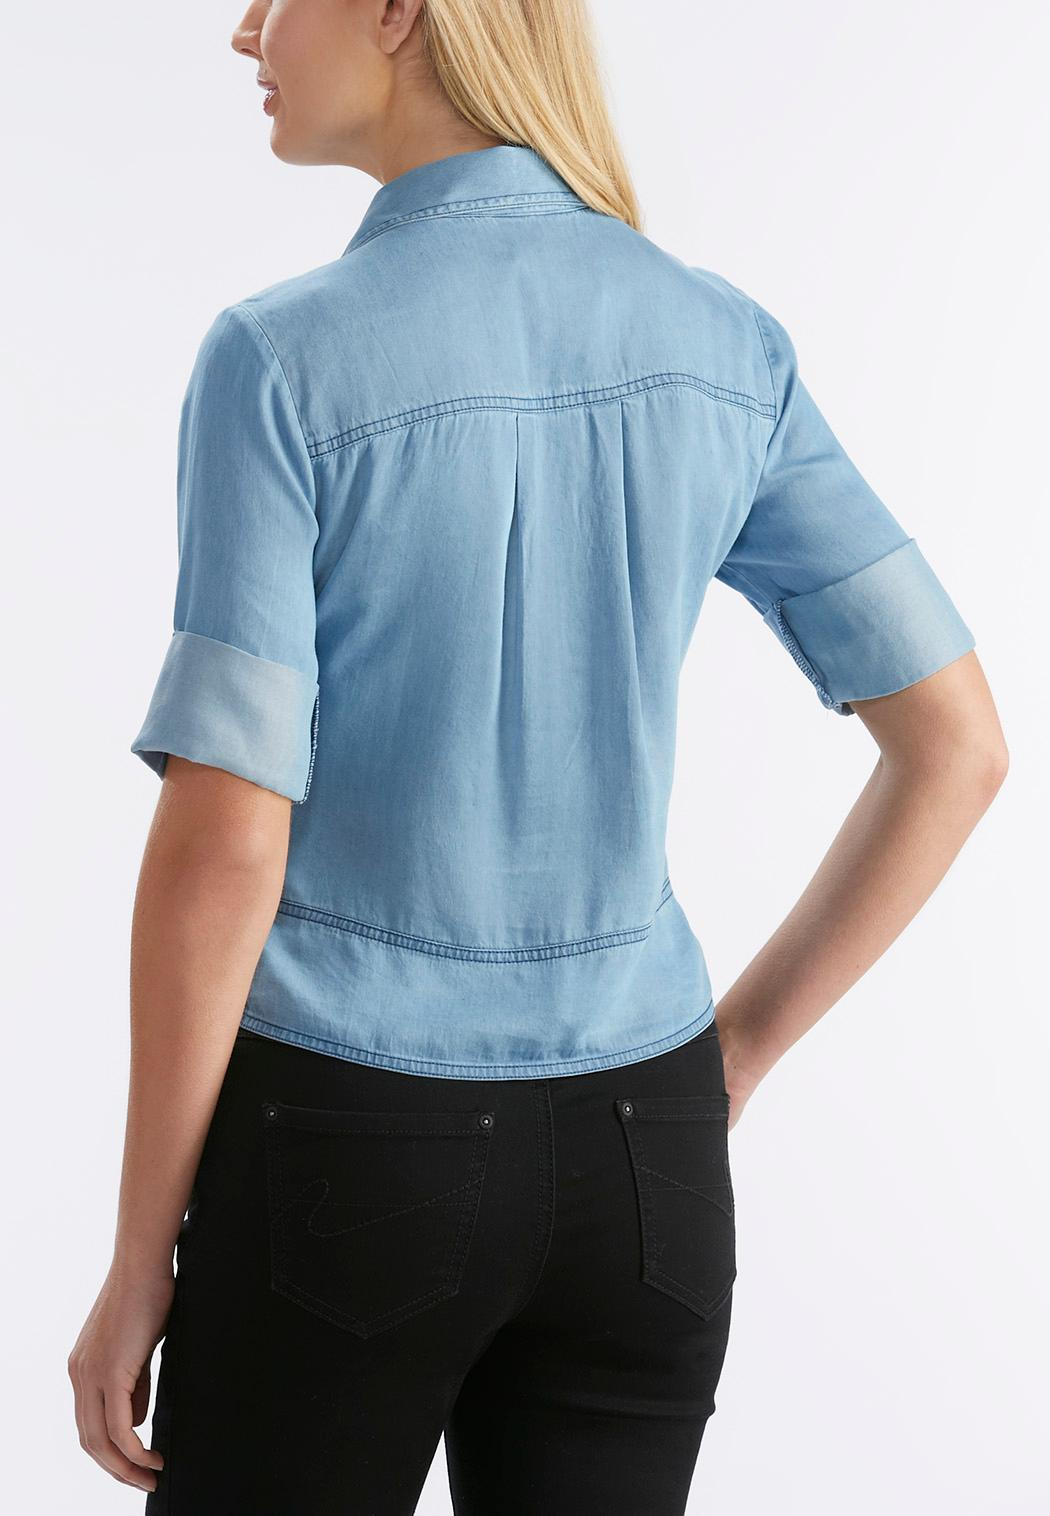 Tie front chambray shirt plus shirts cato fashions for Plus size chambray shirt